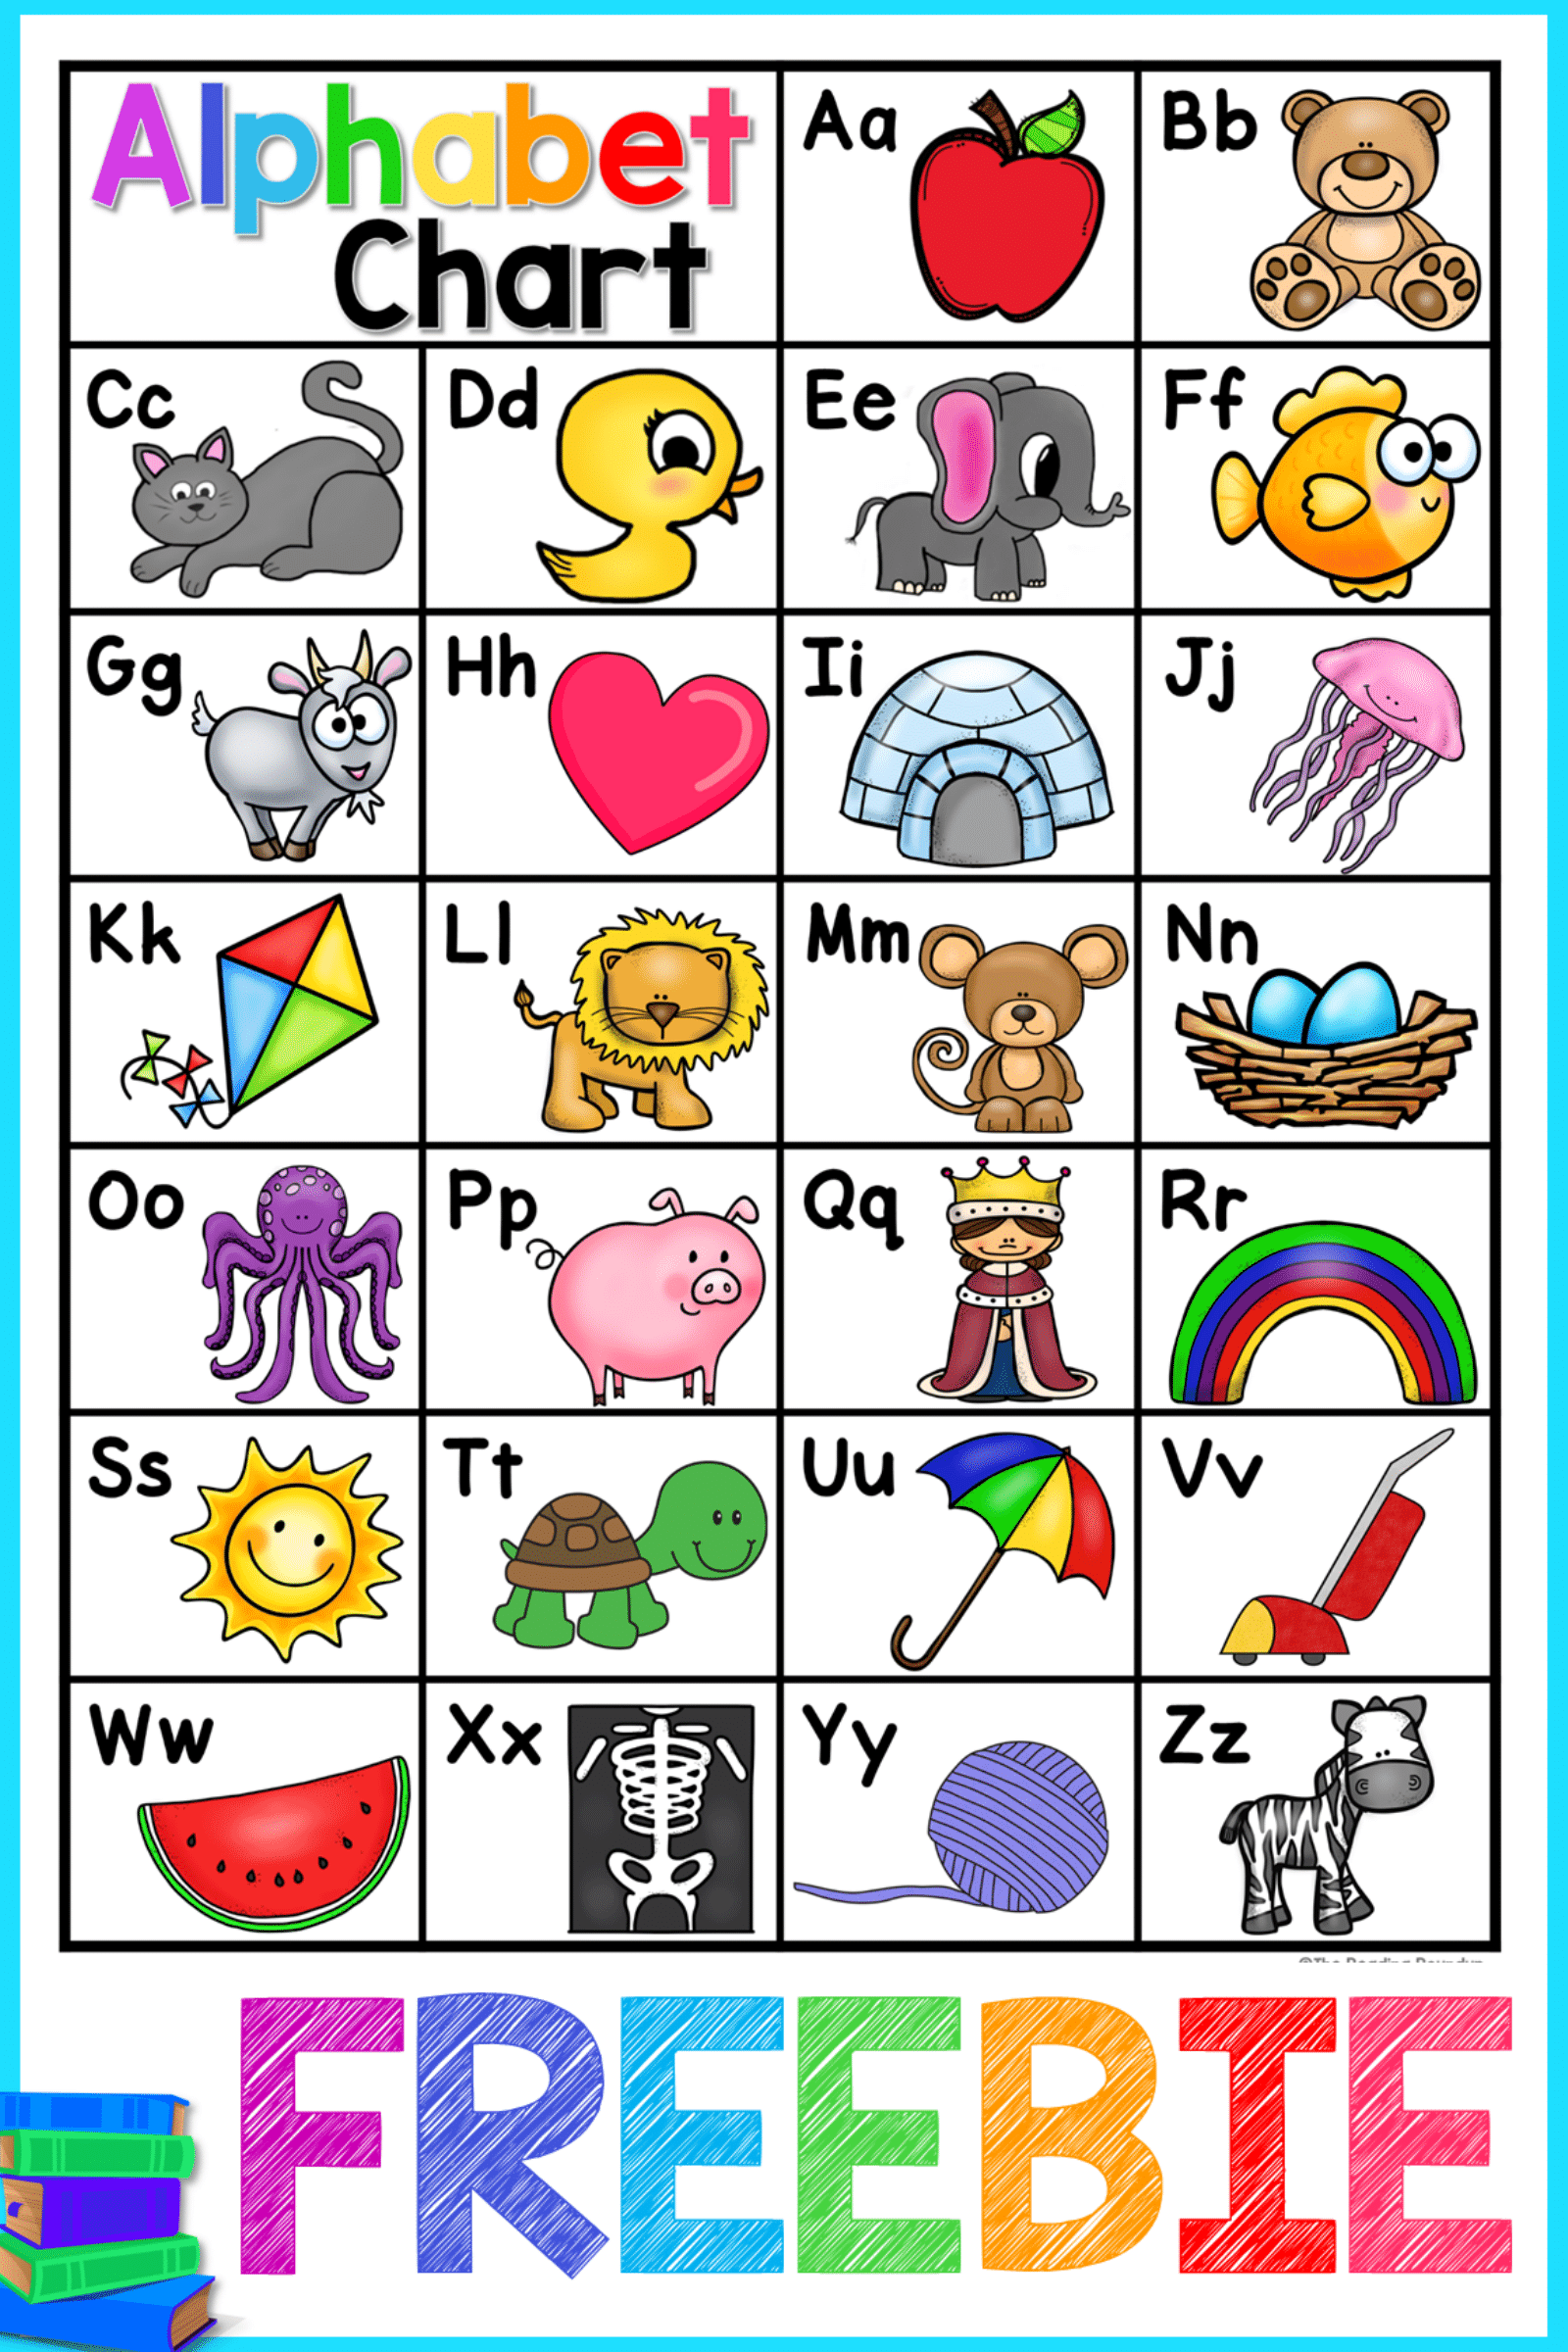 Alphabet Chart Free With Images